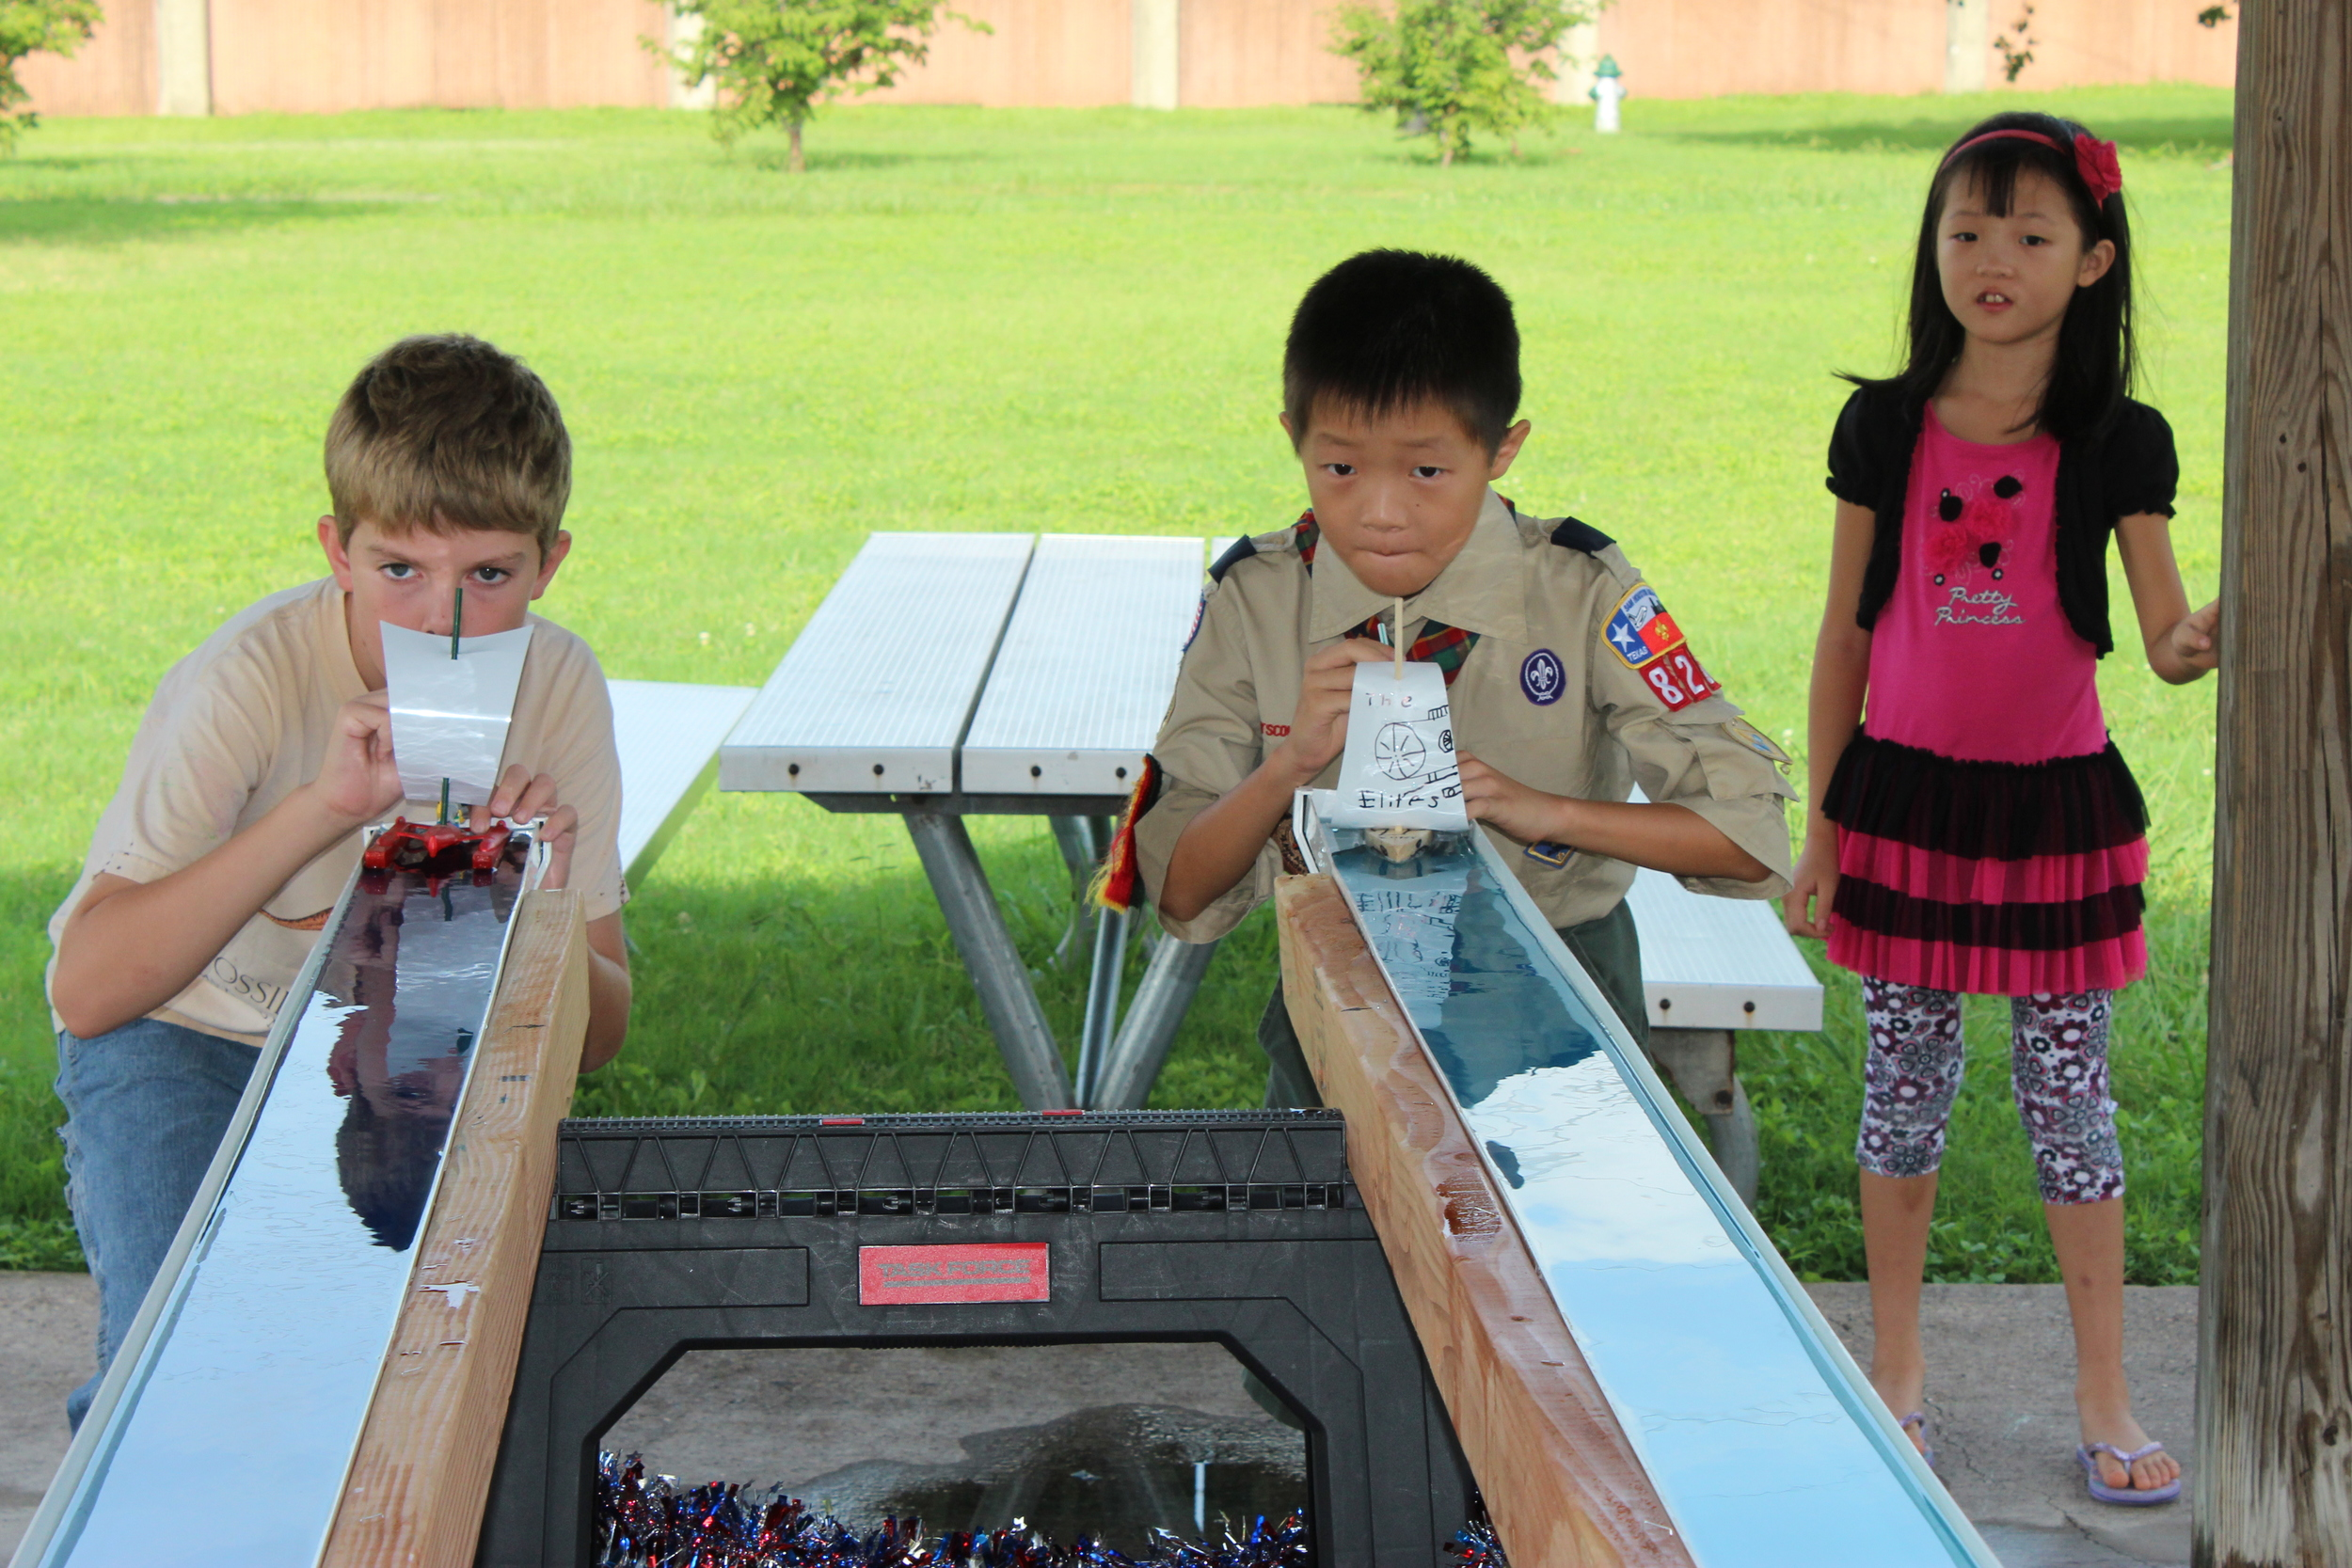 raingutter regatta 2012 058.JPG